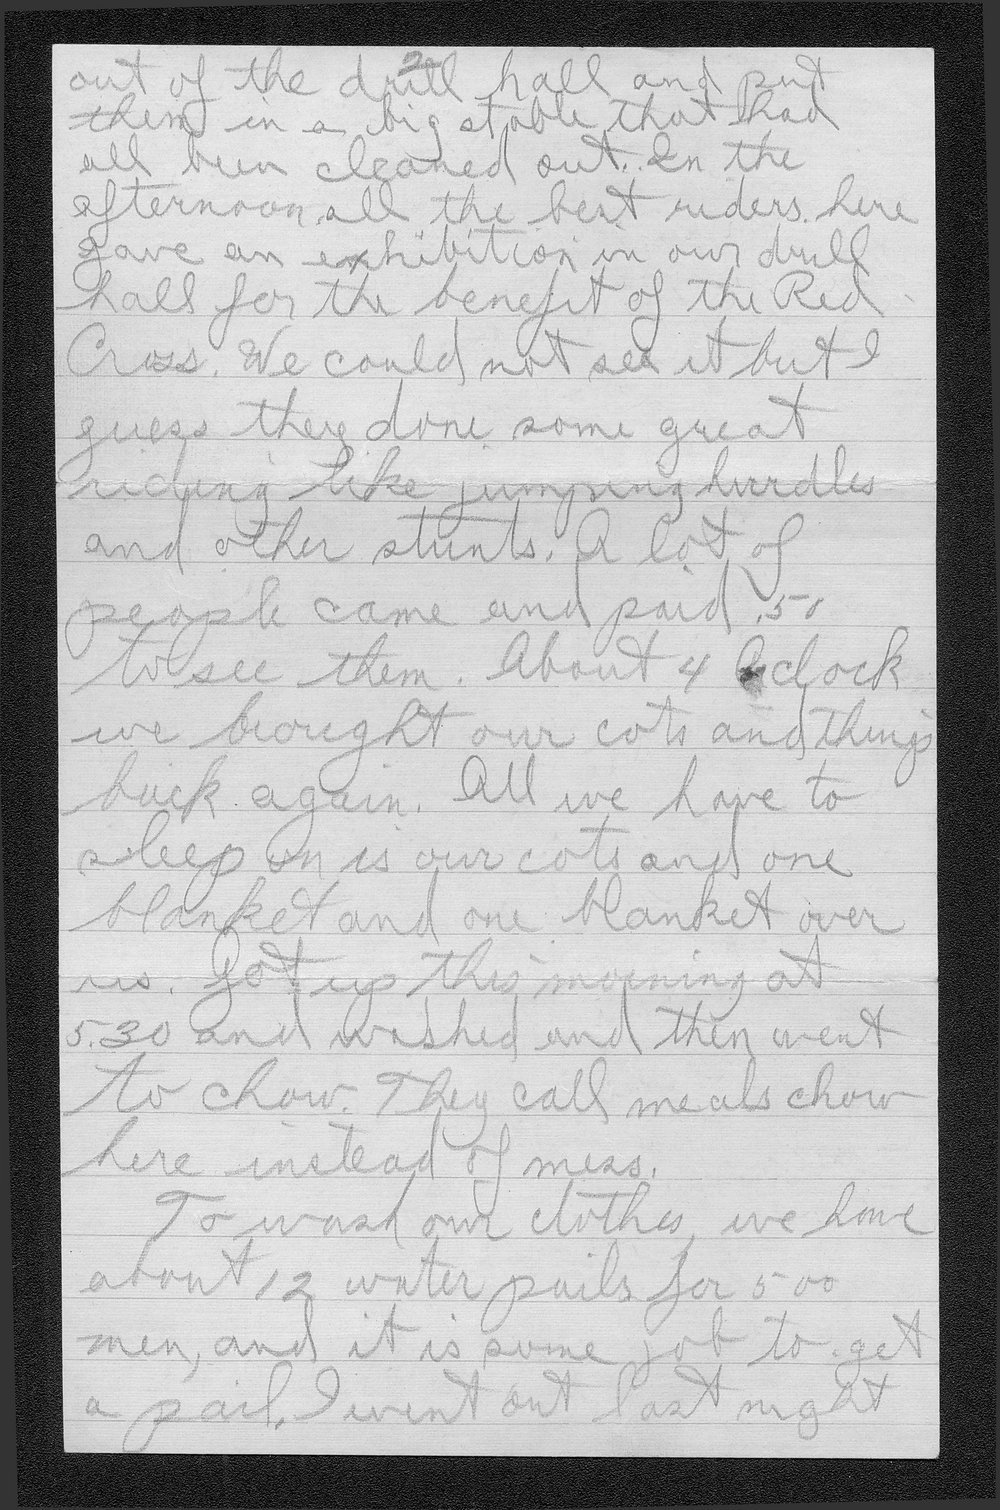 Clark Bruster to his family - 8